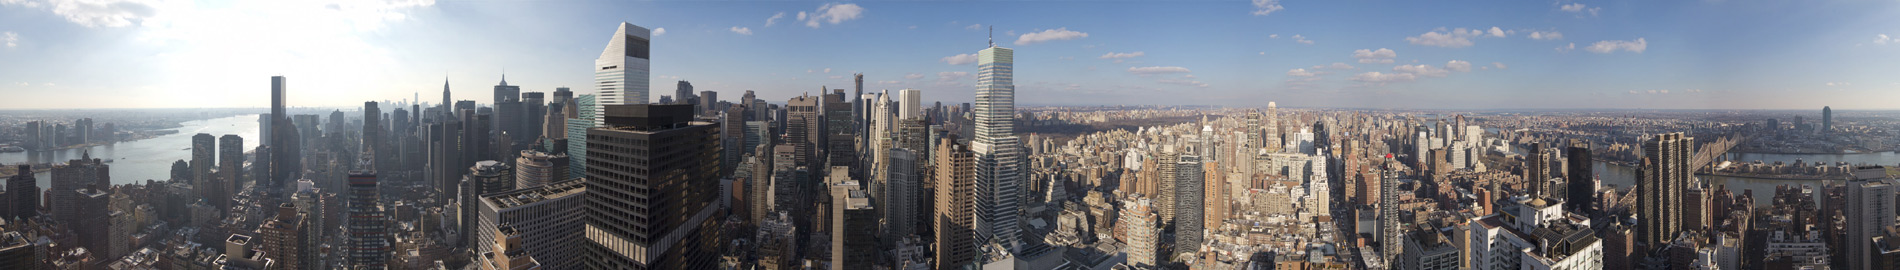 nyc future view assessment with 360 panoramic